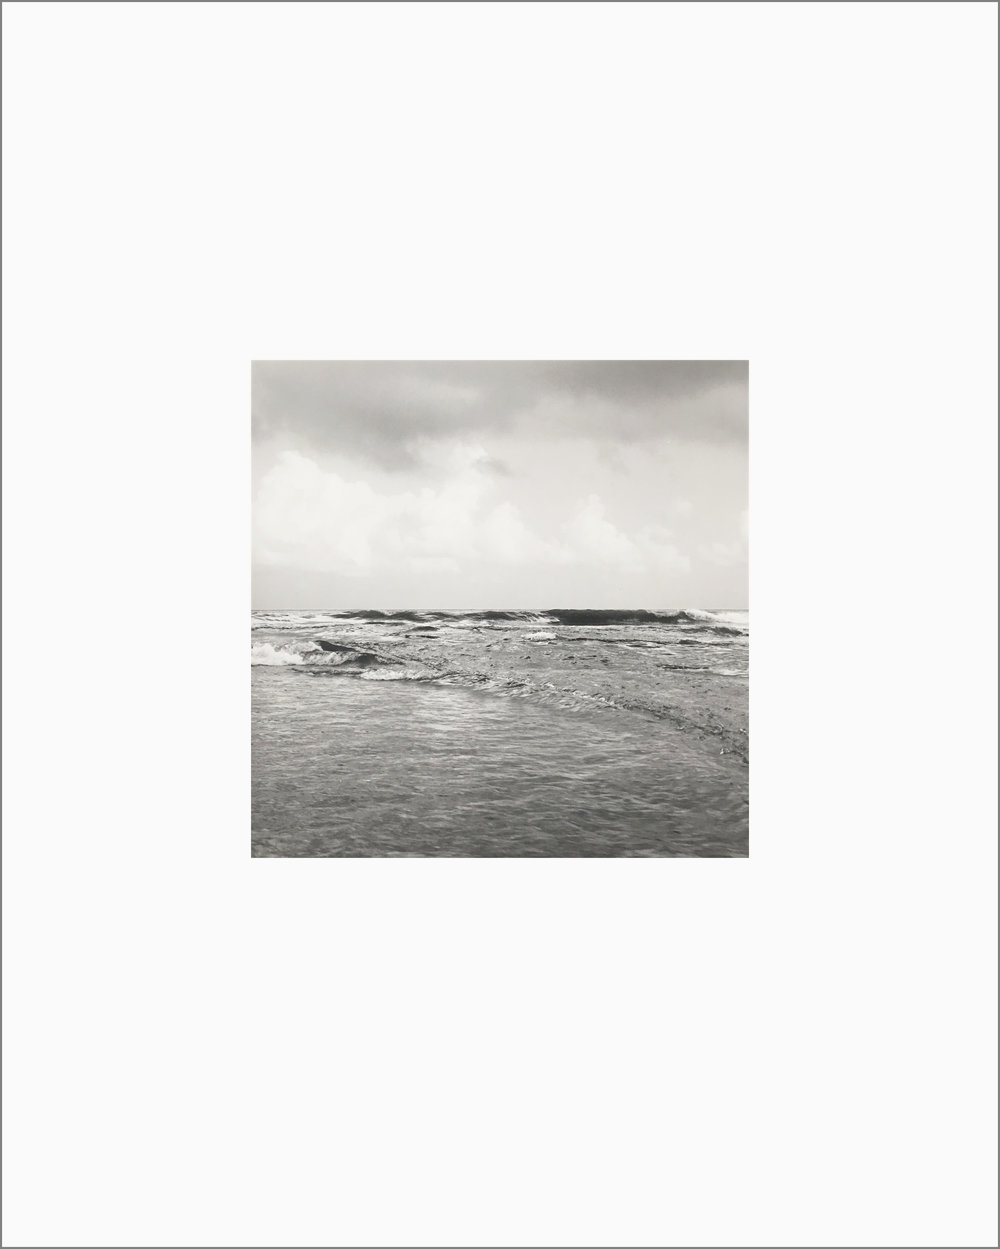 Mikael Levin, Untitled, 2001 Gelatin silver print. 20 5/8 x 16 6/8 x 1 3/8 inches (framed)	 Ed 1/5 (2001094)